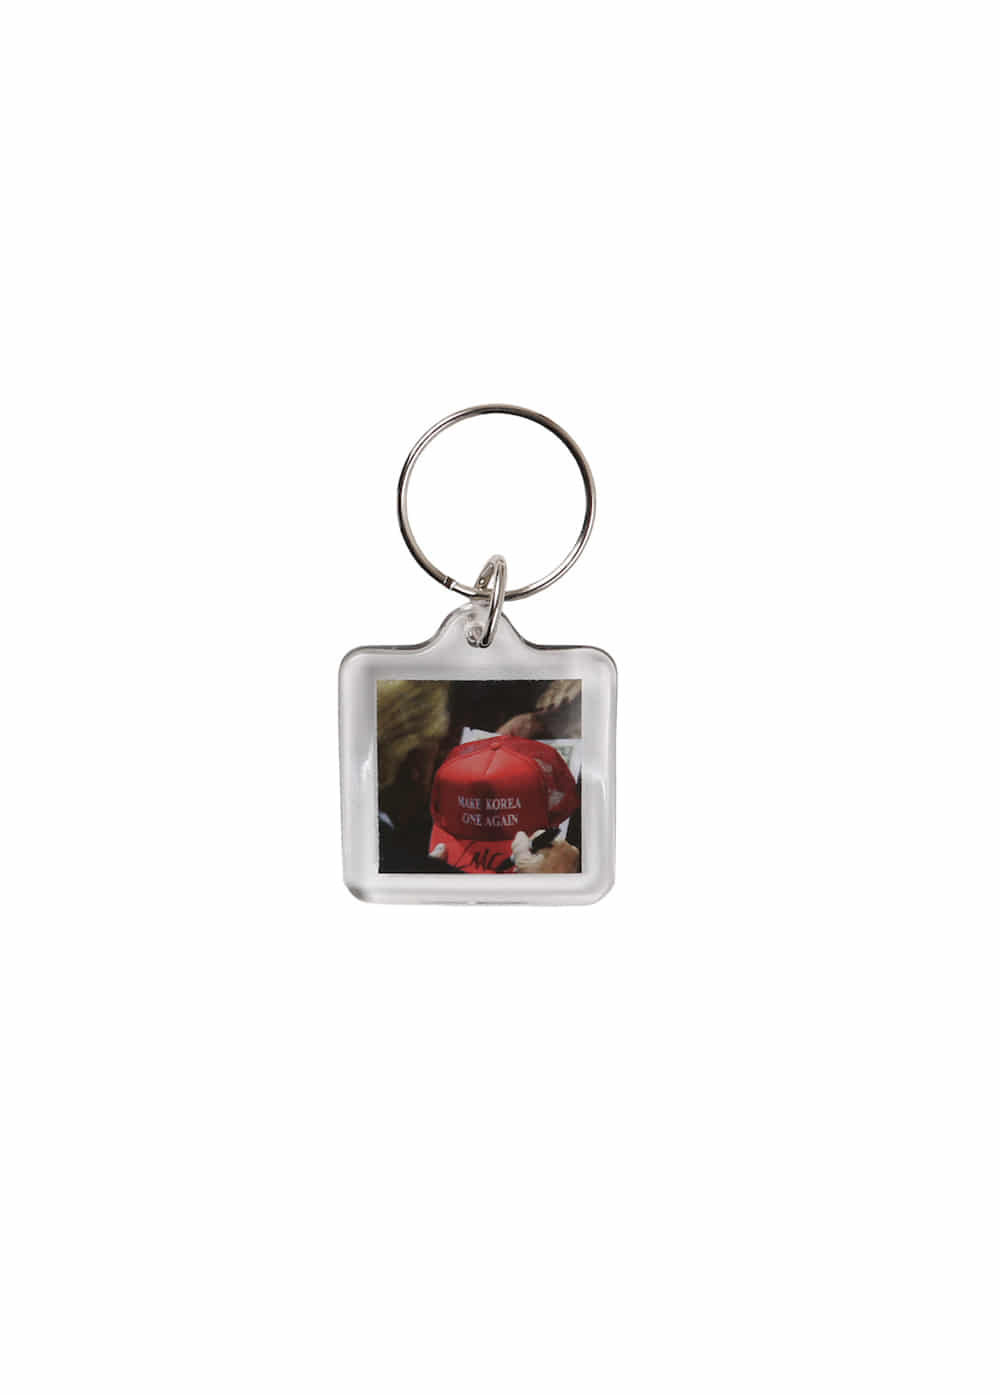 LMC MKOA ACRYLIC KEY TAG black